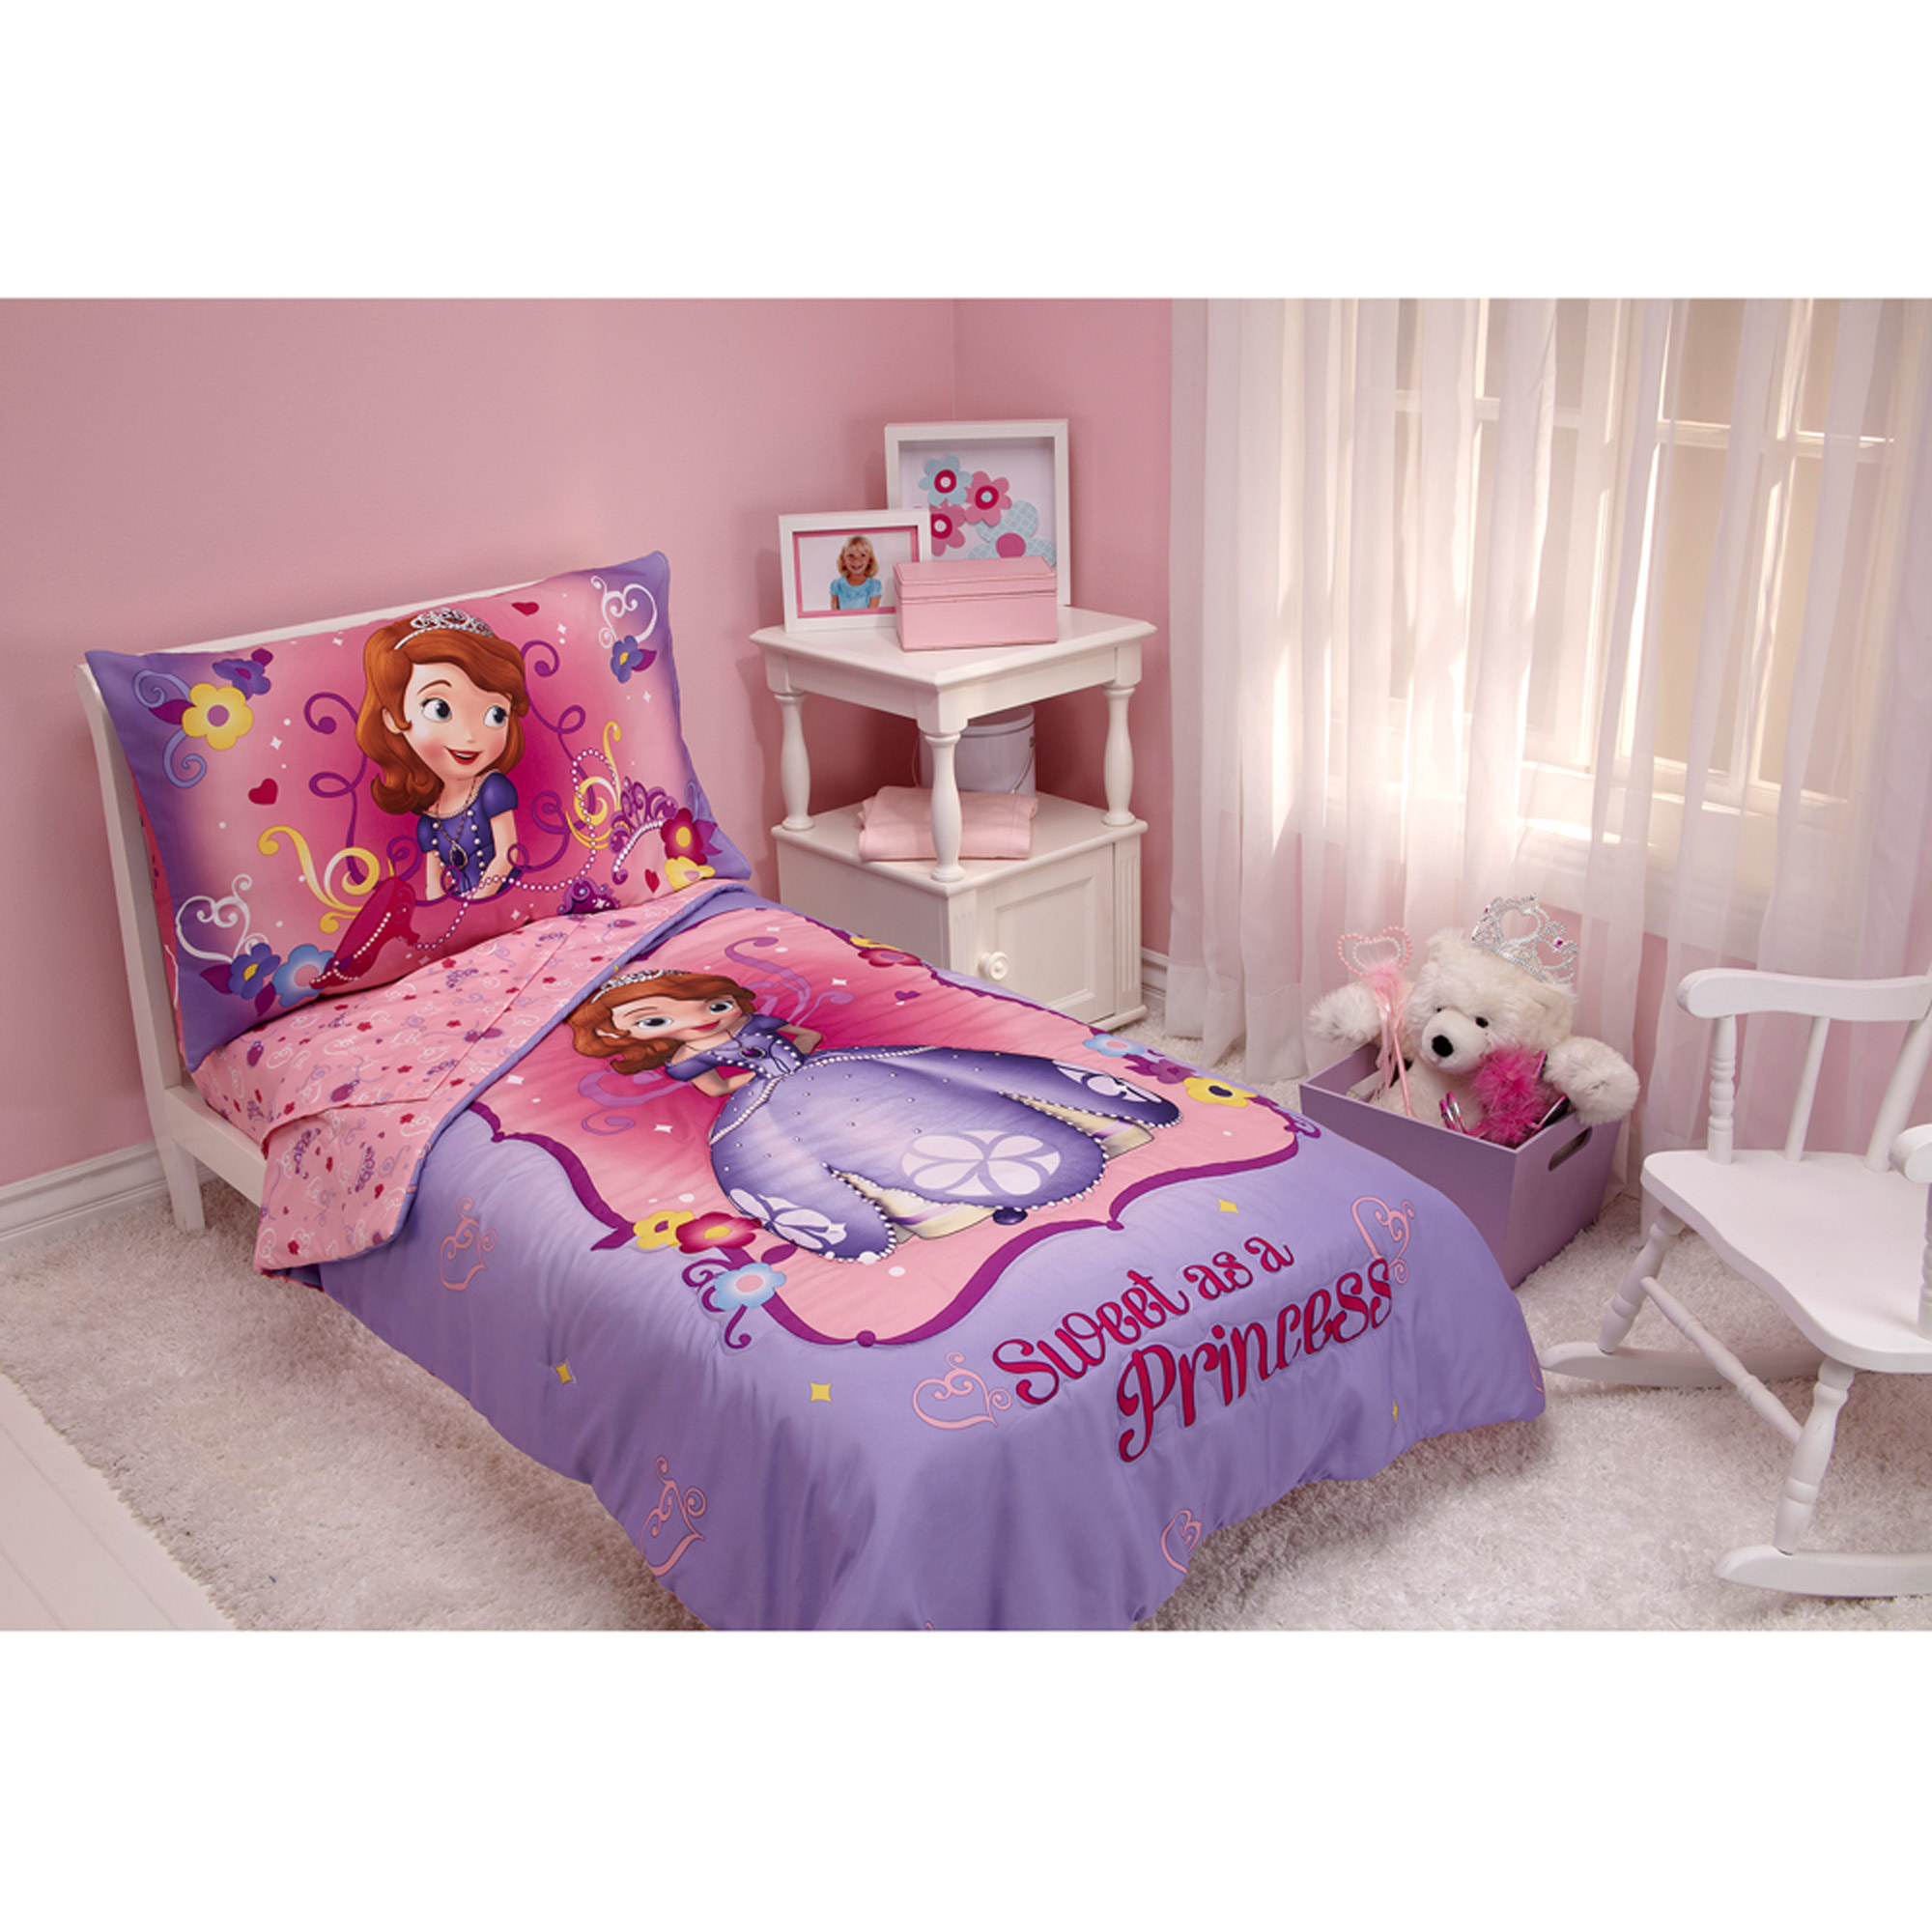 disney sofia the first 3pc toddler bedding set with bonus matching disney sofia the first 3pc toddler bedding set with bonus matching pillow case walmart com